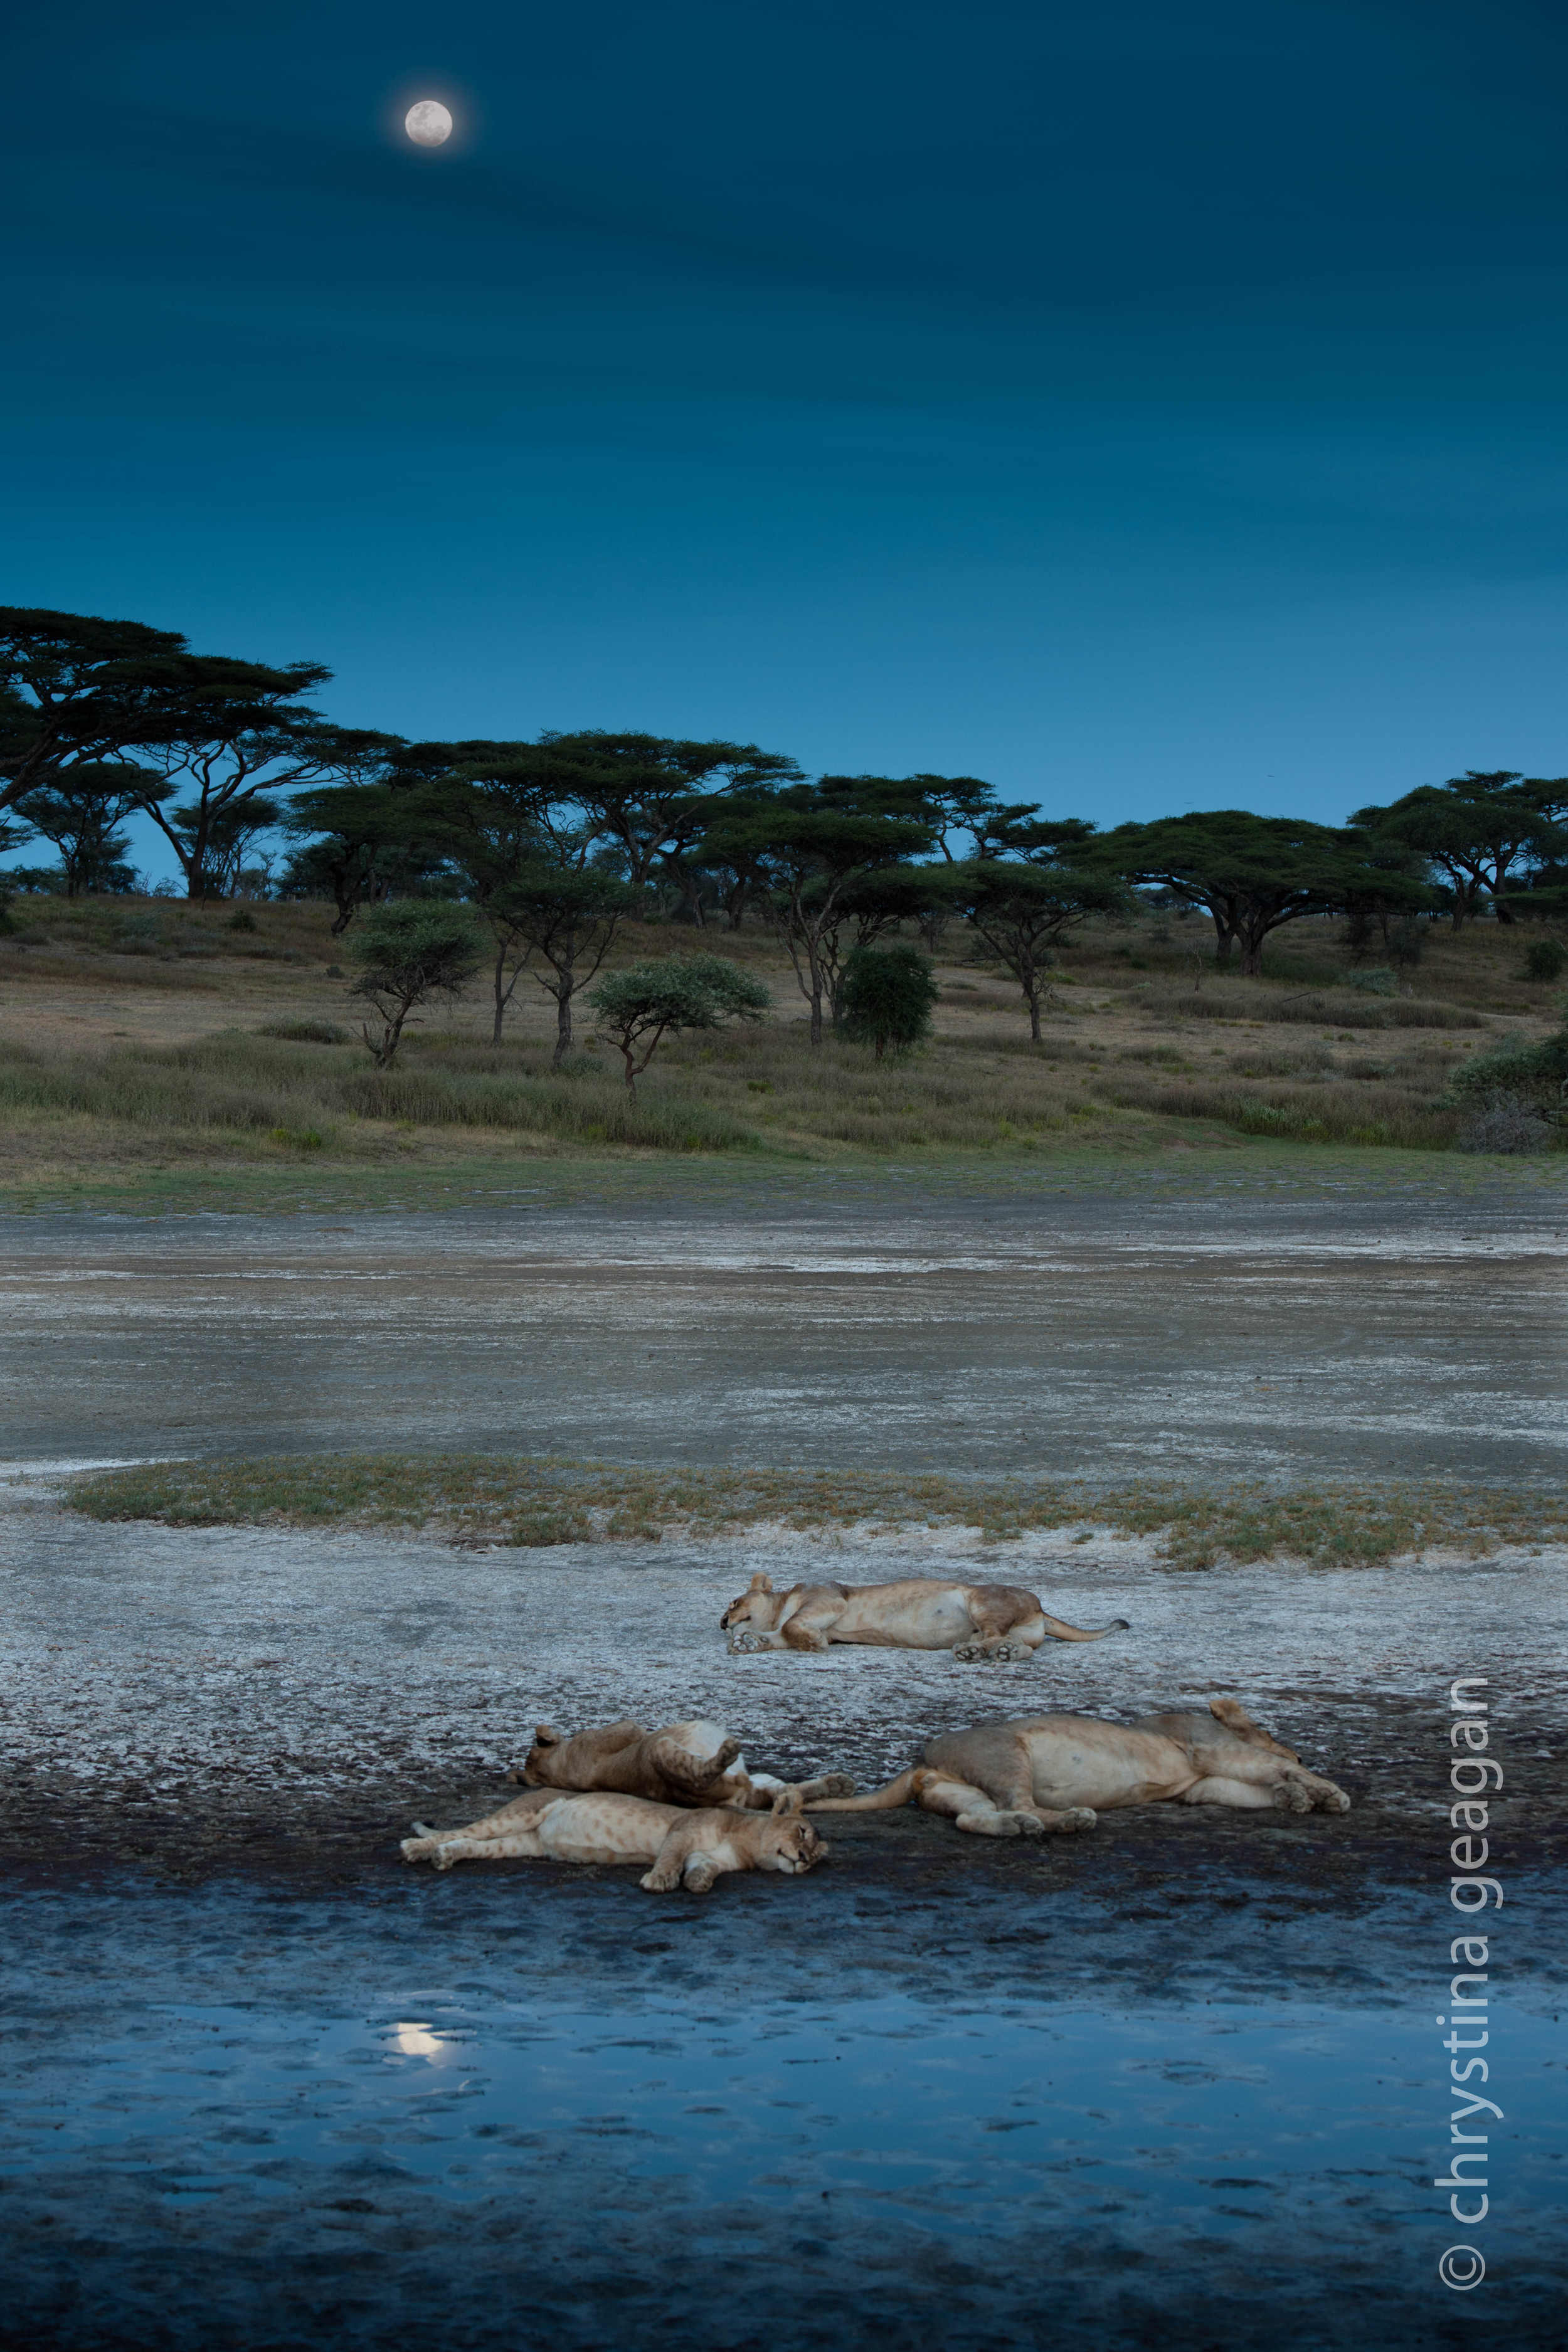 This is one of my favorite images of a pride. I photographed these cuties on the Serengeti one magical evening.